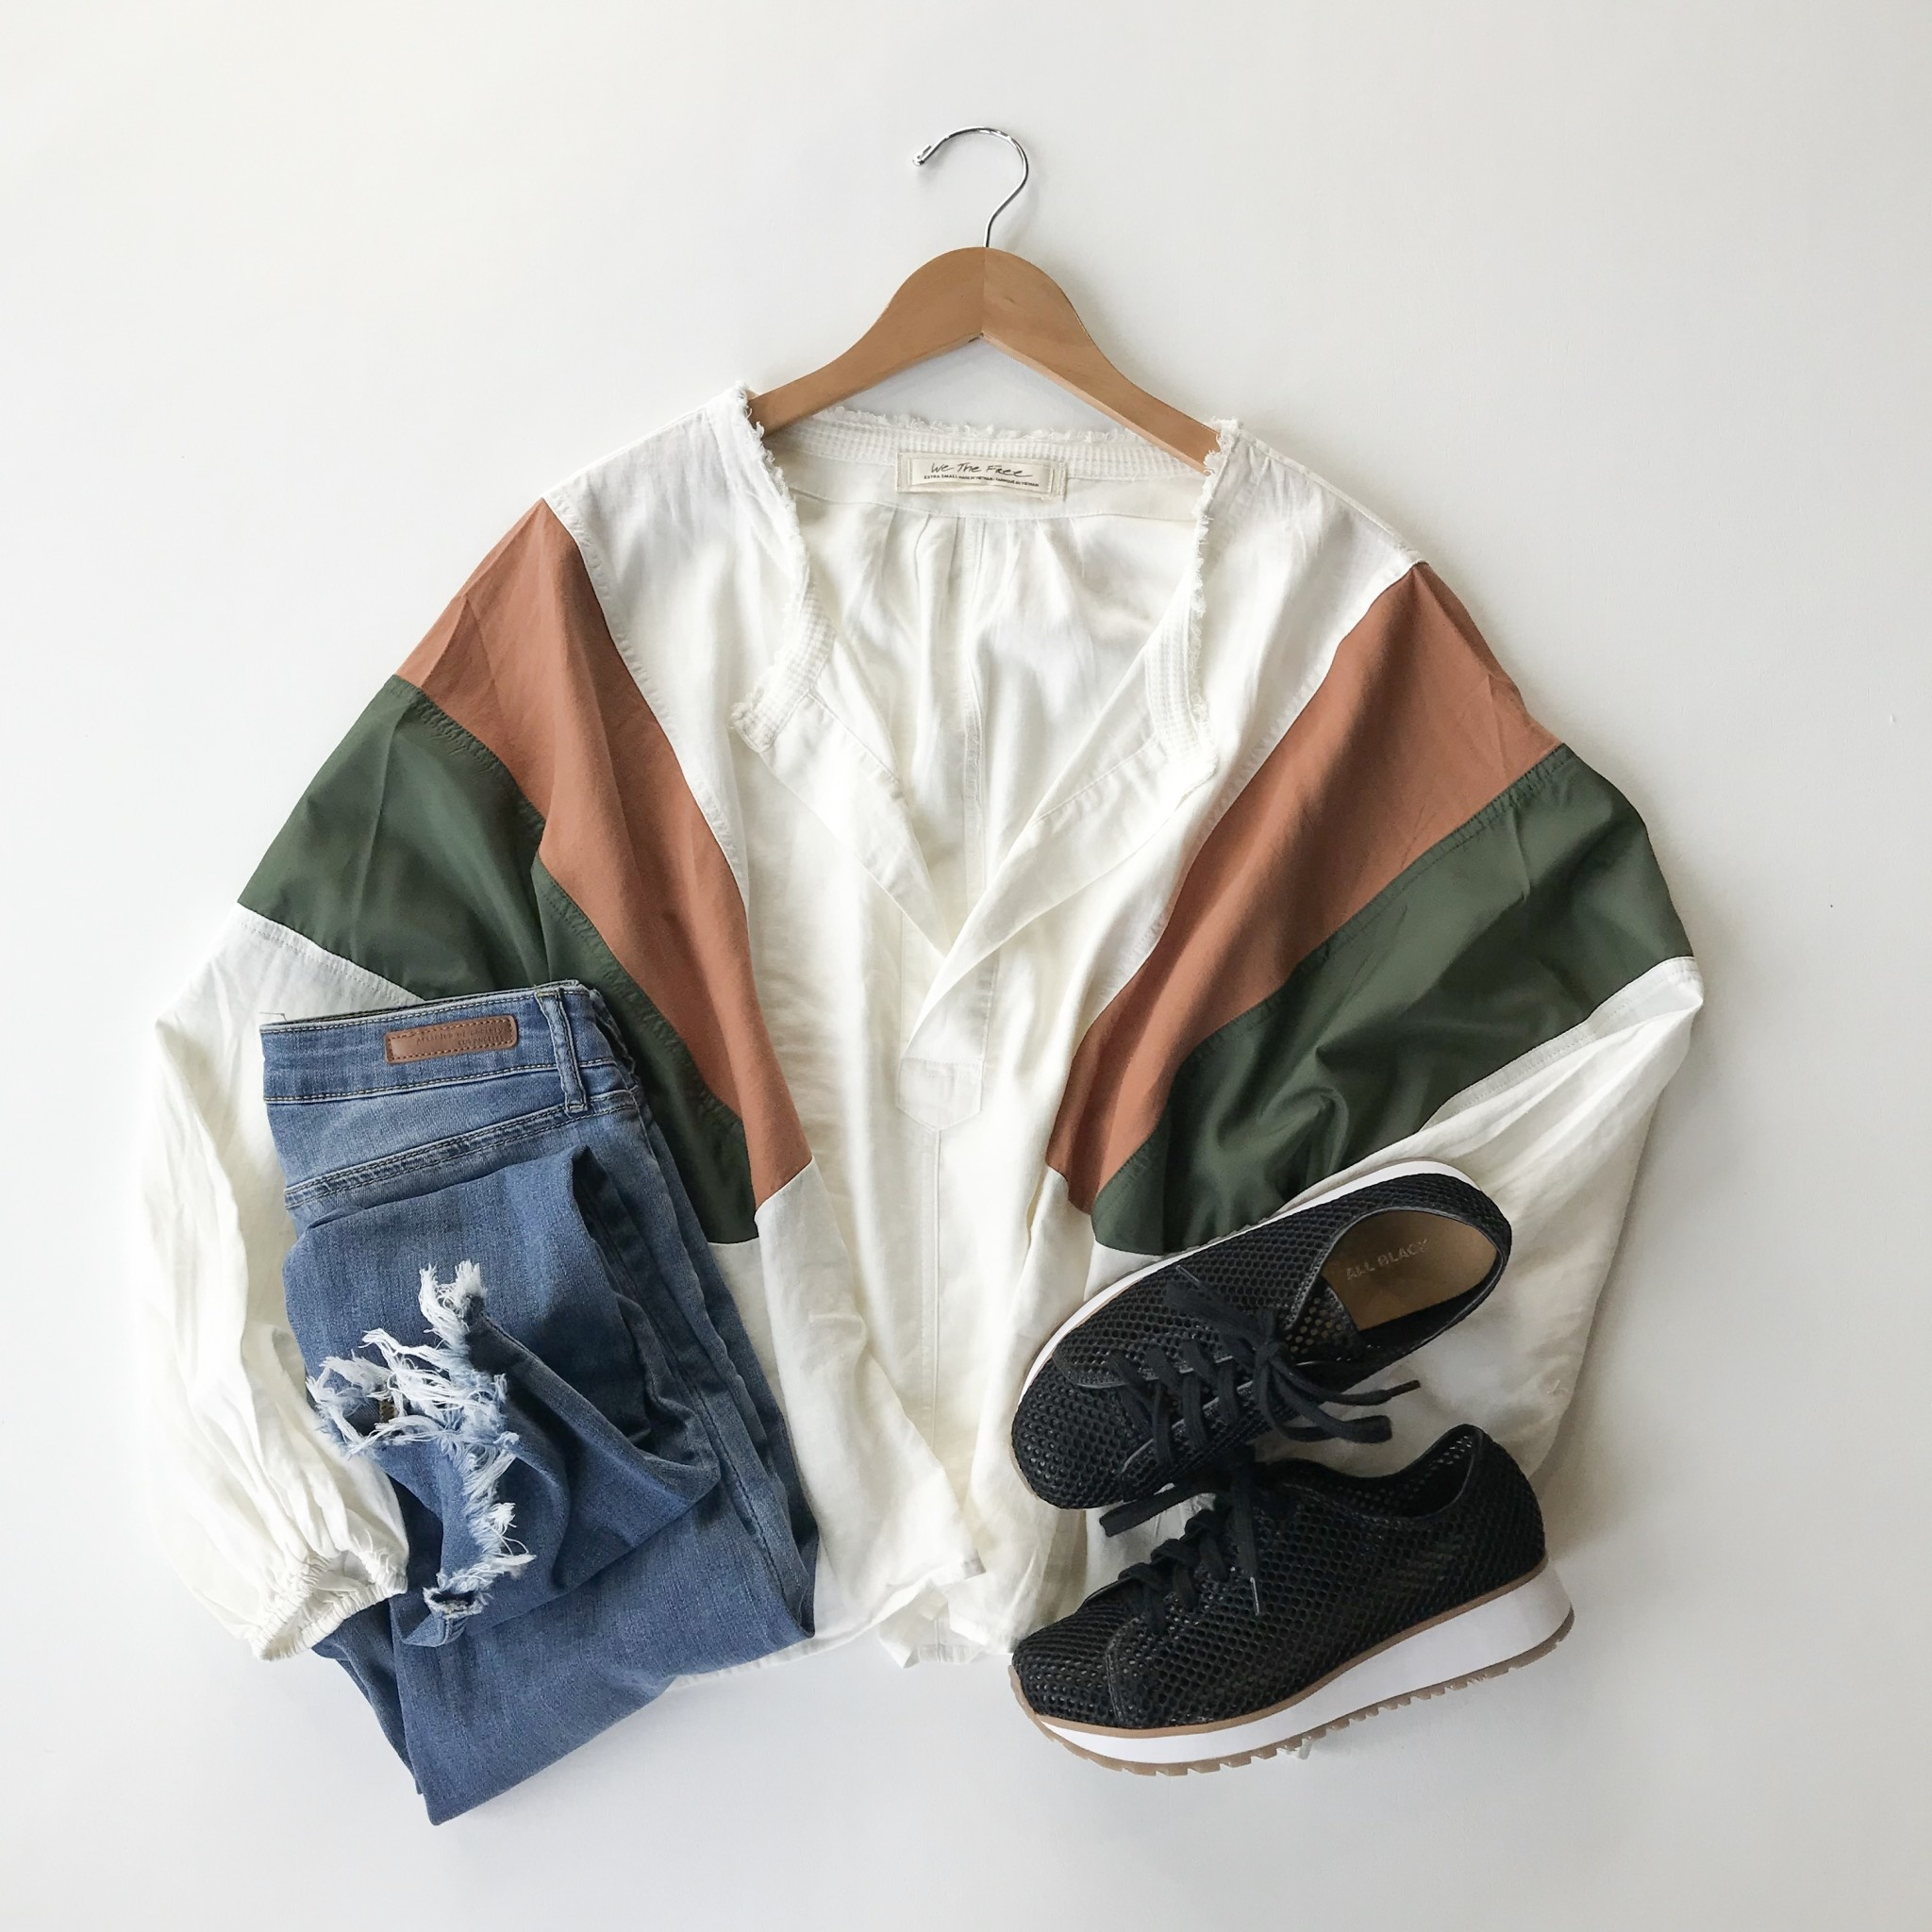 Free People beating hearts top